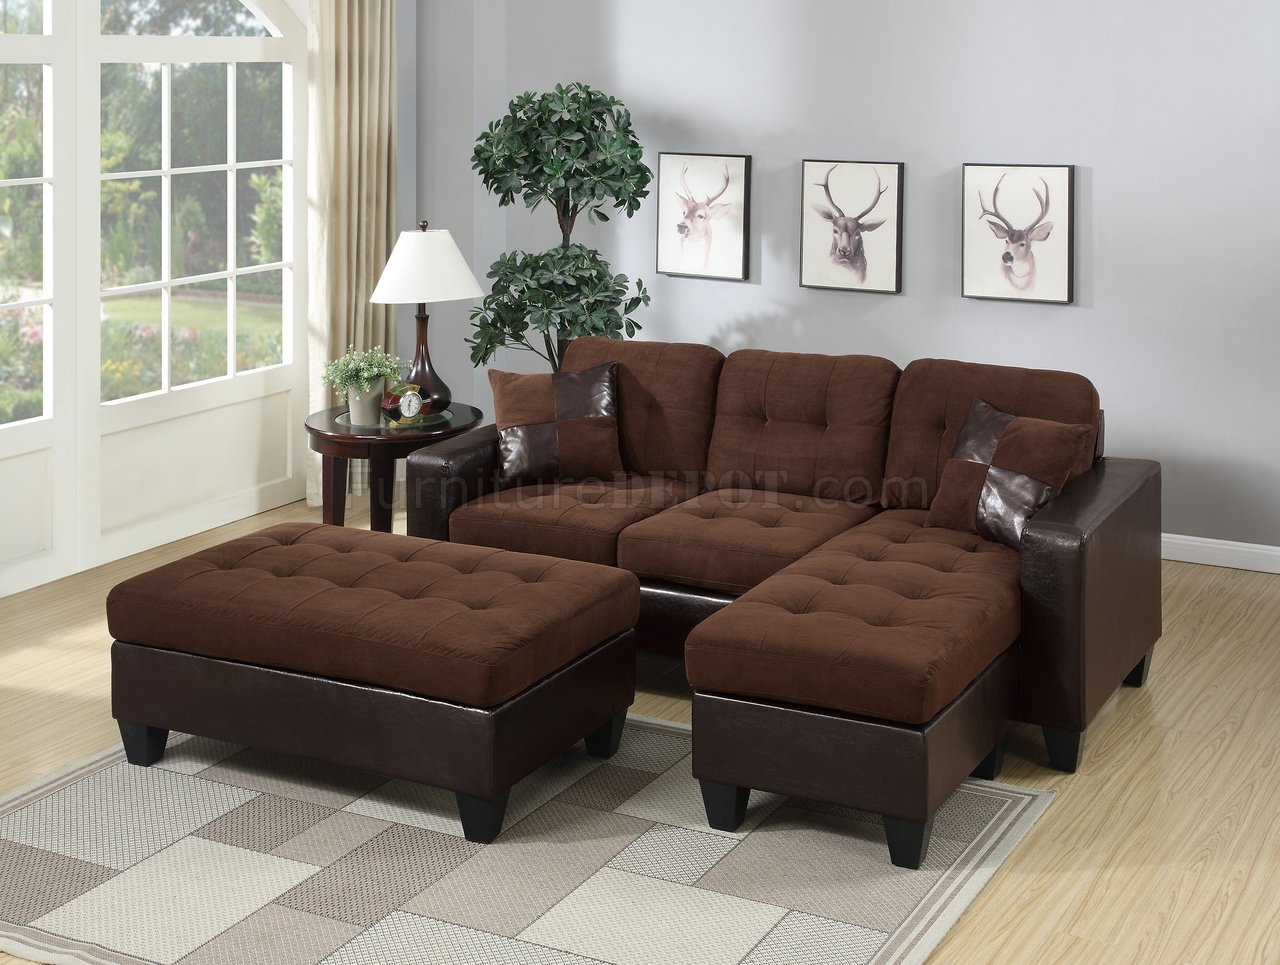 sectional sofas microfiber fabric viesso mota sofa f6928 in chocolate by boss